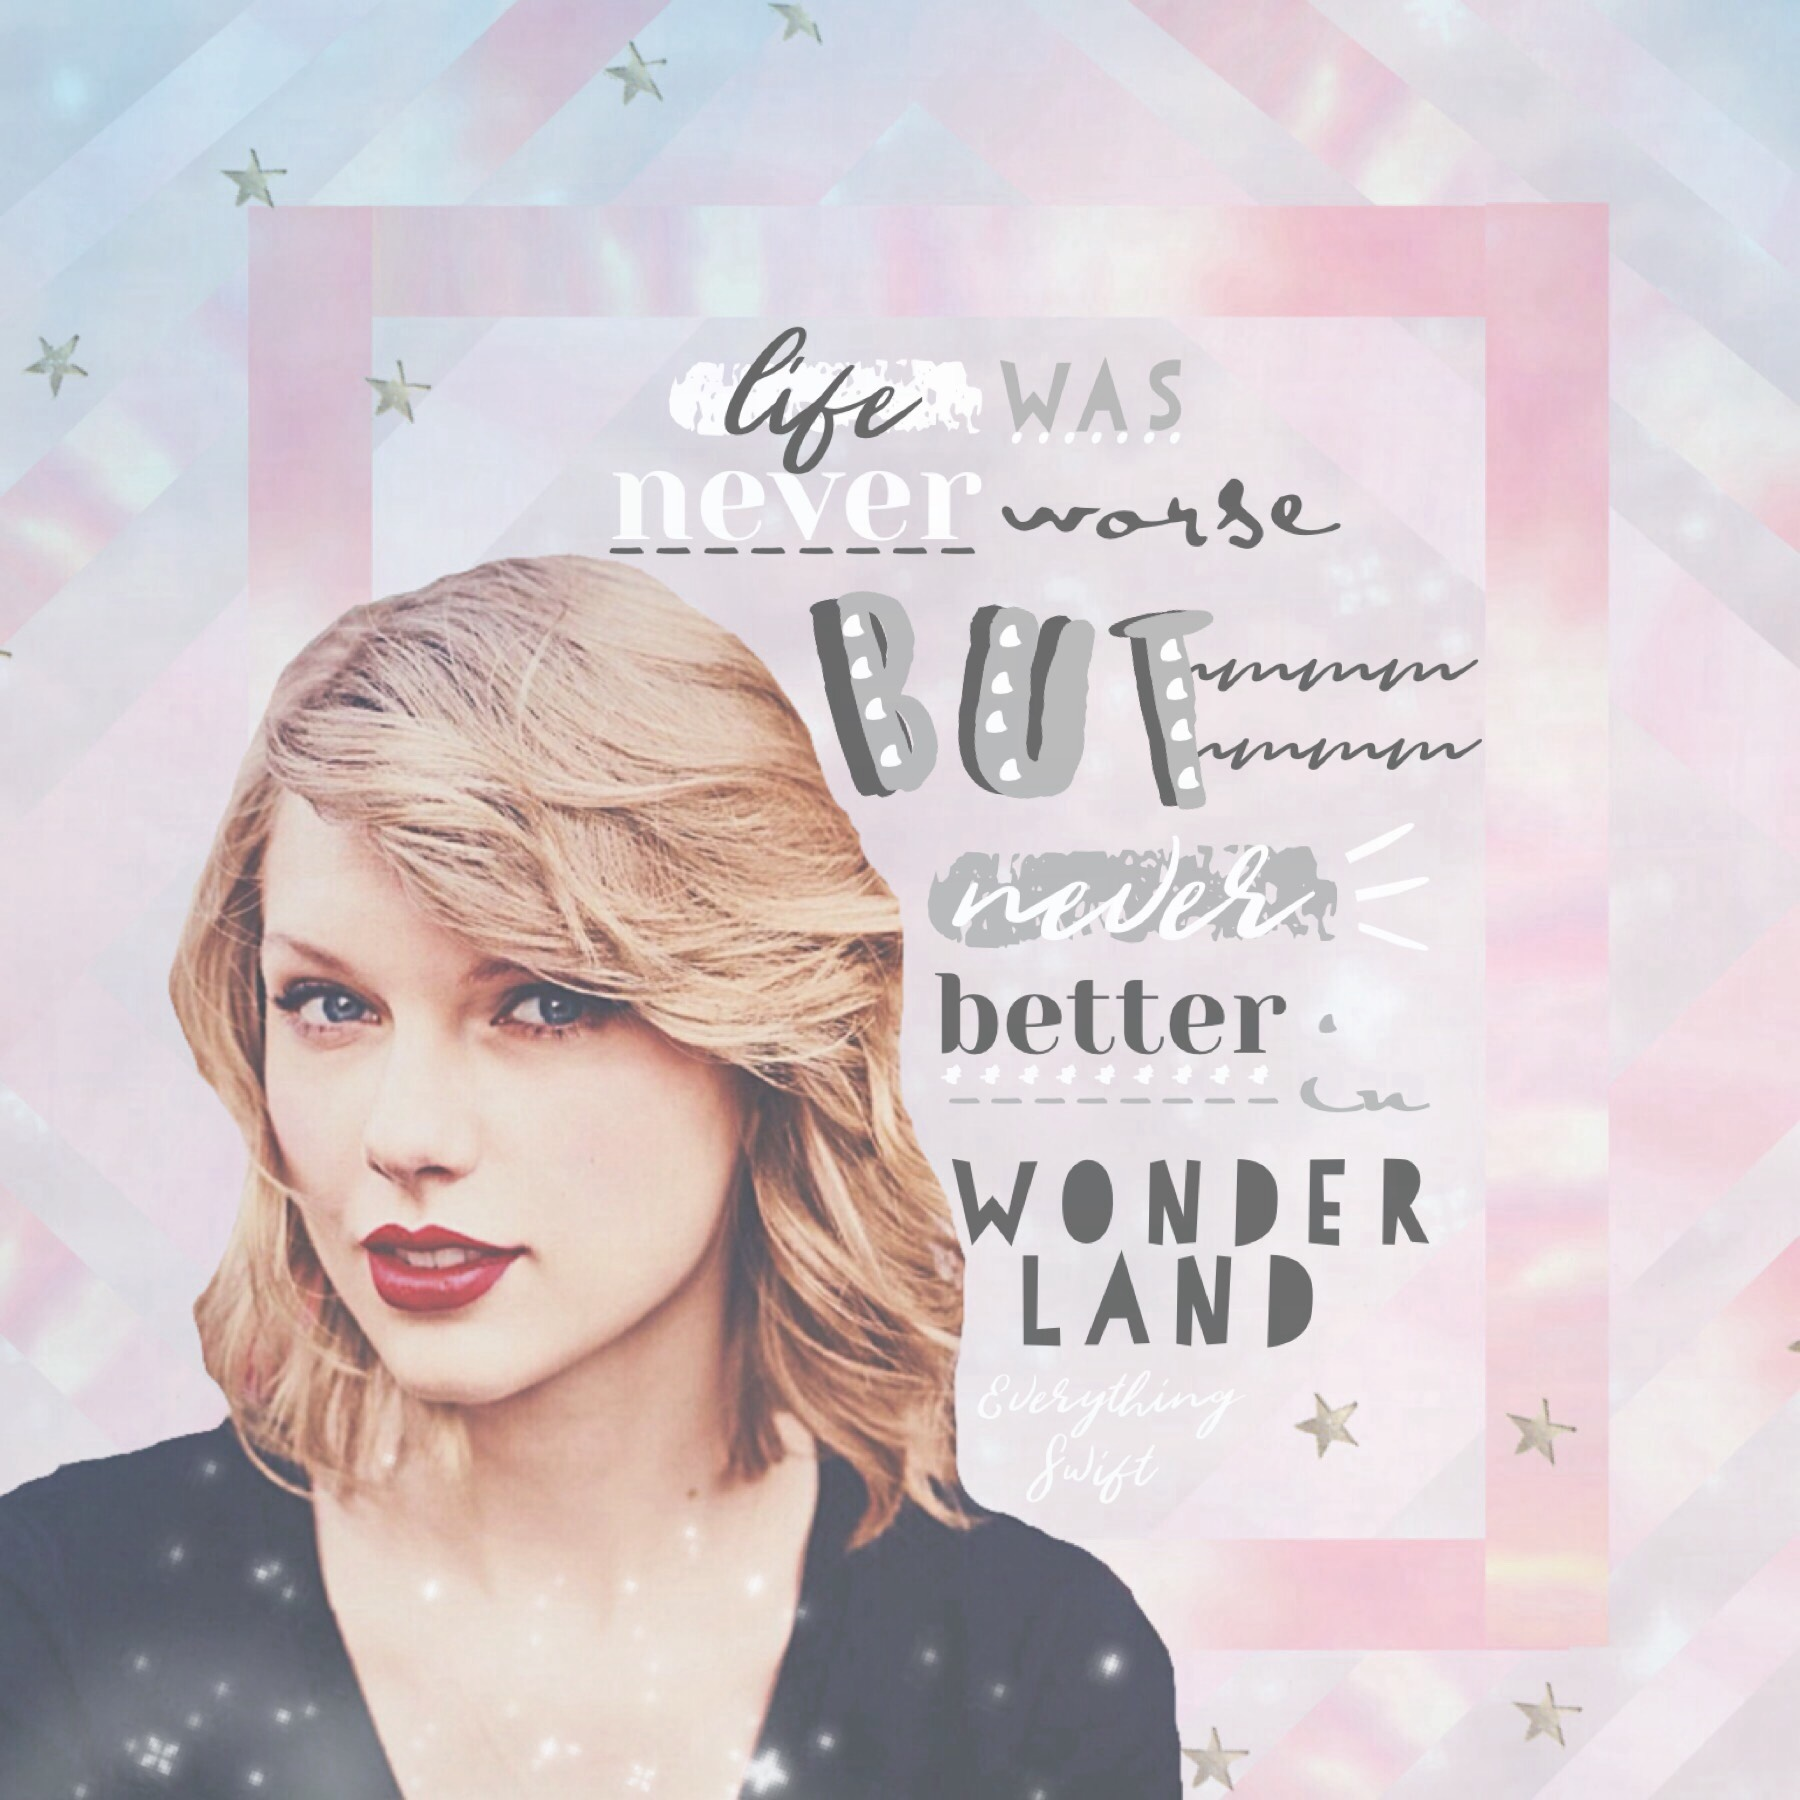 Yay I posted! I'm trying to focus on text more. How did I do? Tap! 💕 QOTD: Fav Taylor Swift bonus track? AOTD: You Are In Love (my fav song ever) but I love  Wonderland and New Romantics too